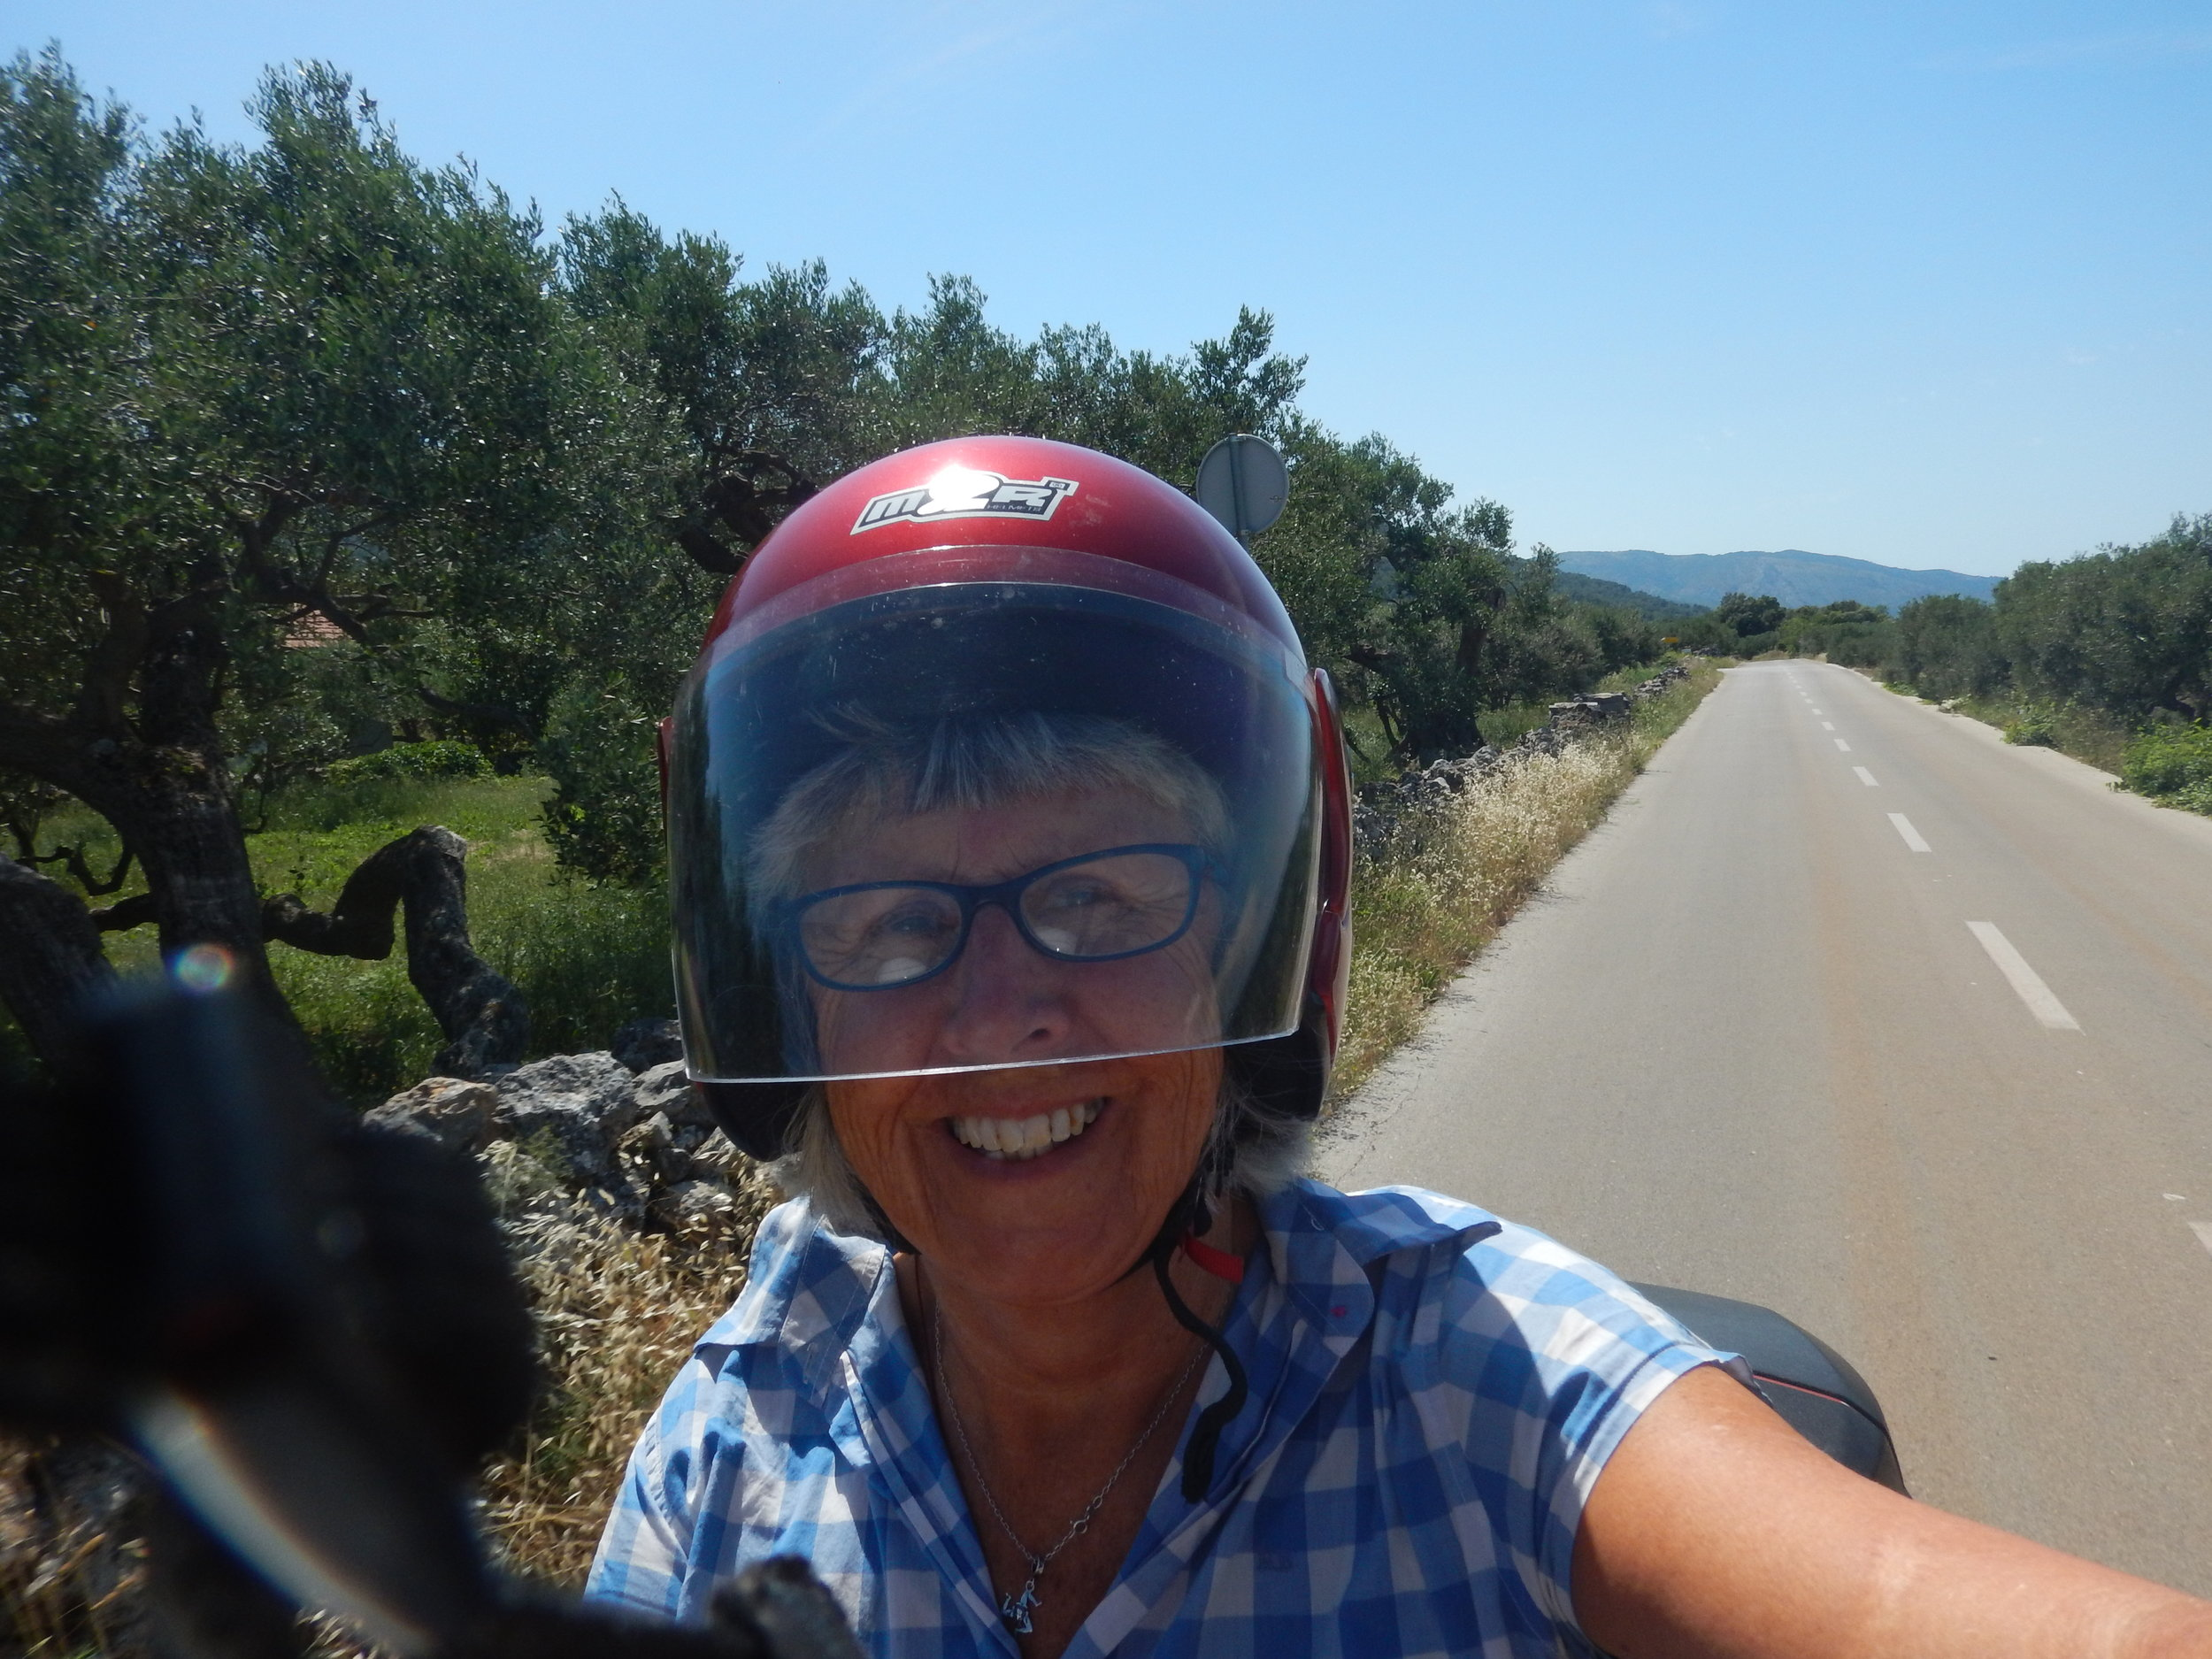 riding through olive groves and vineyards.